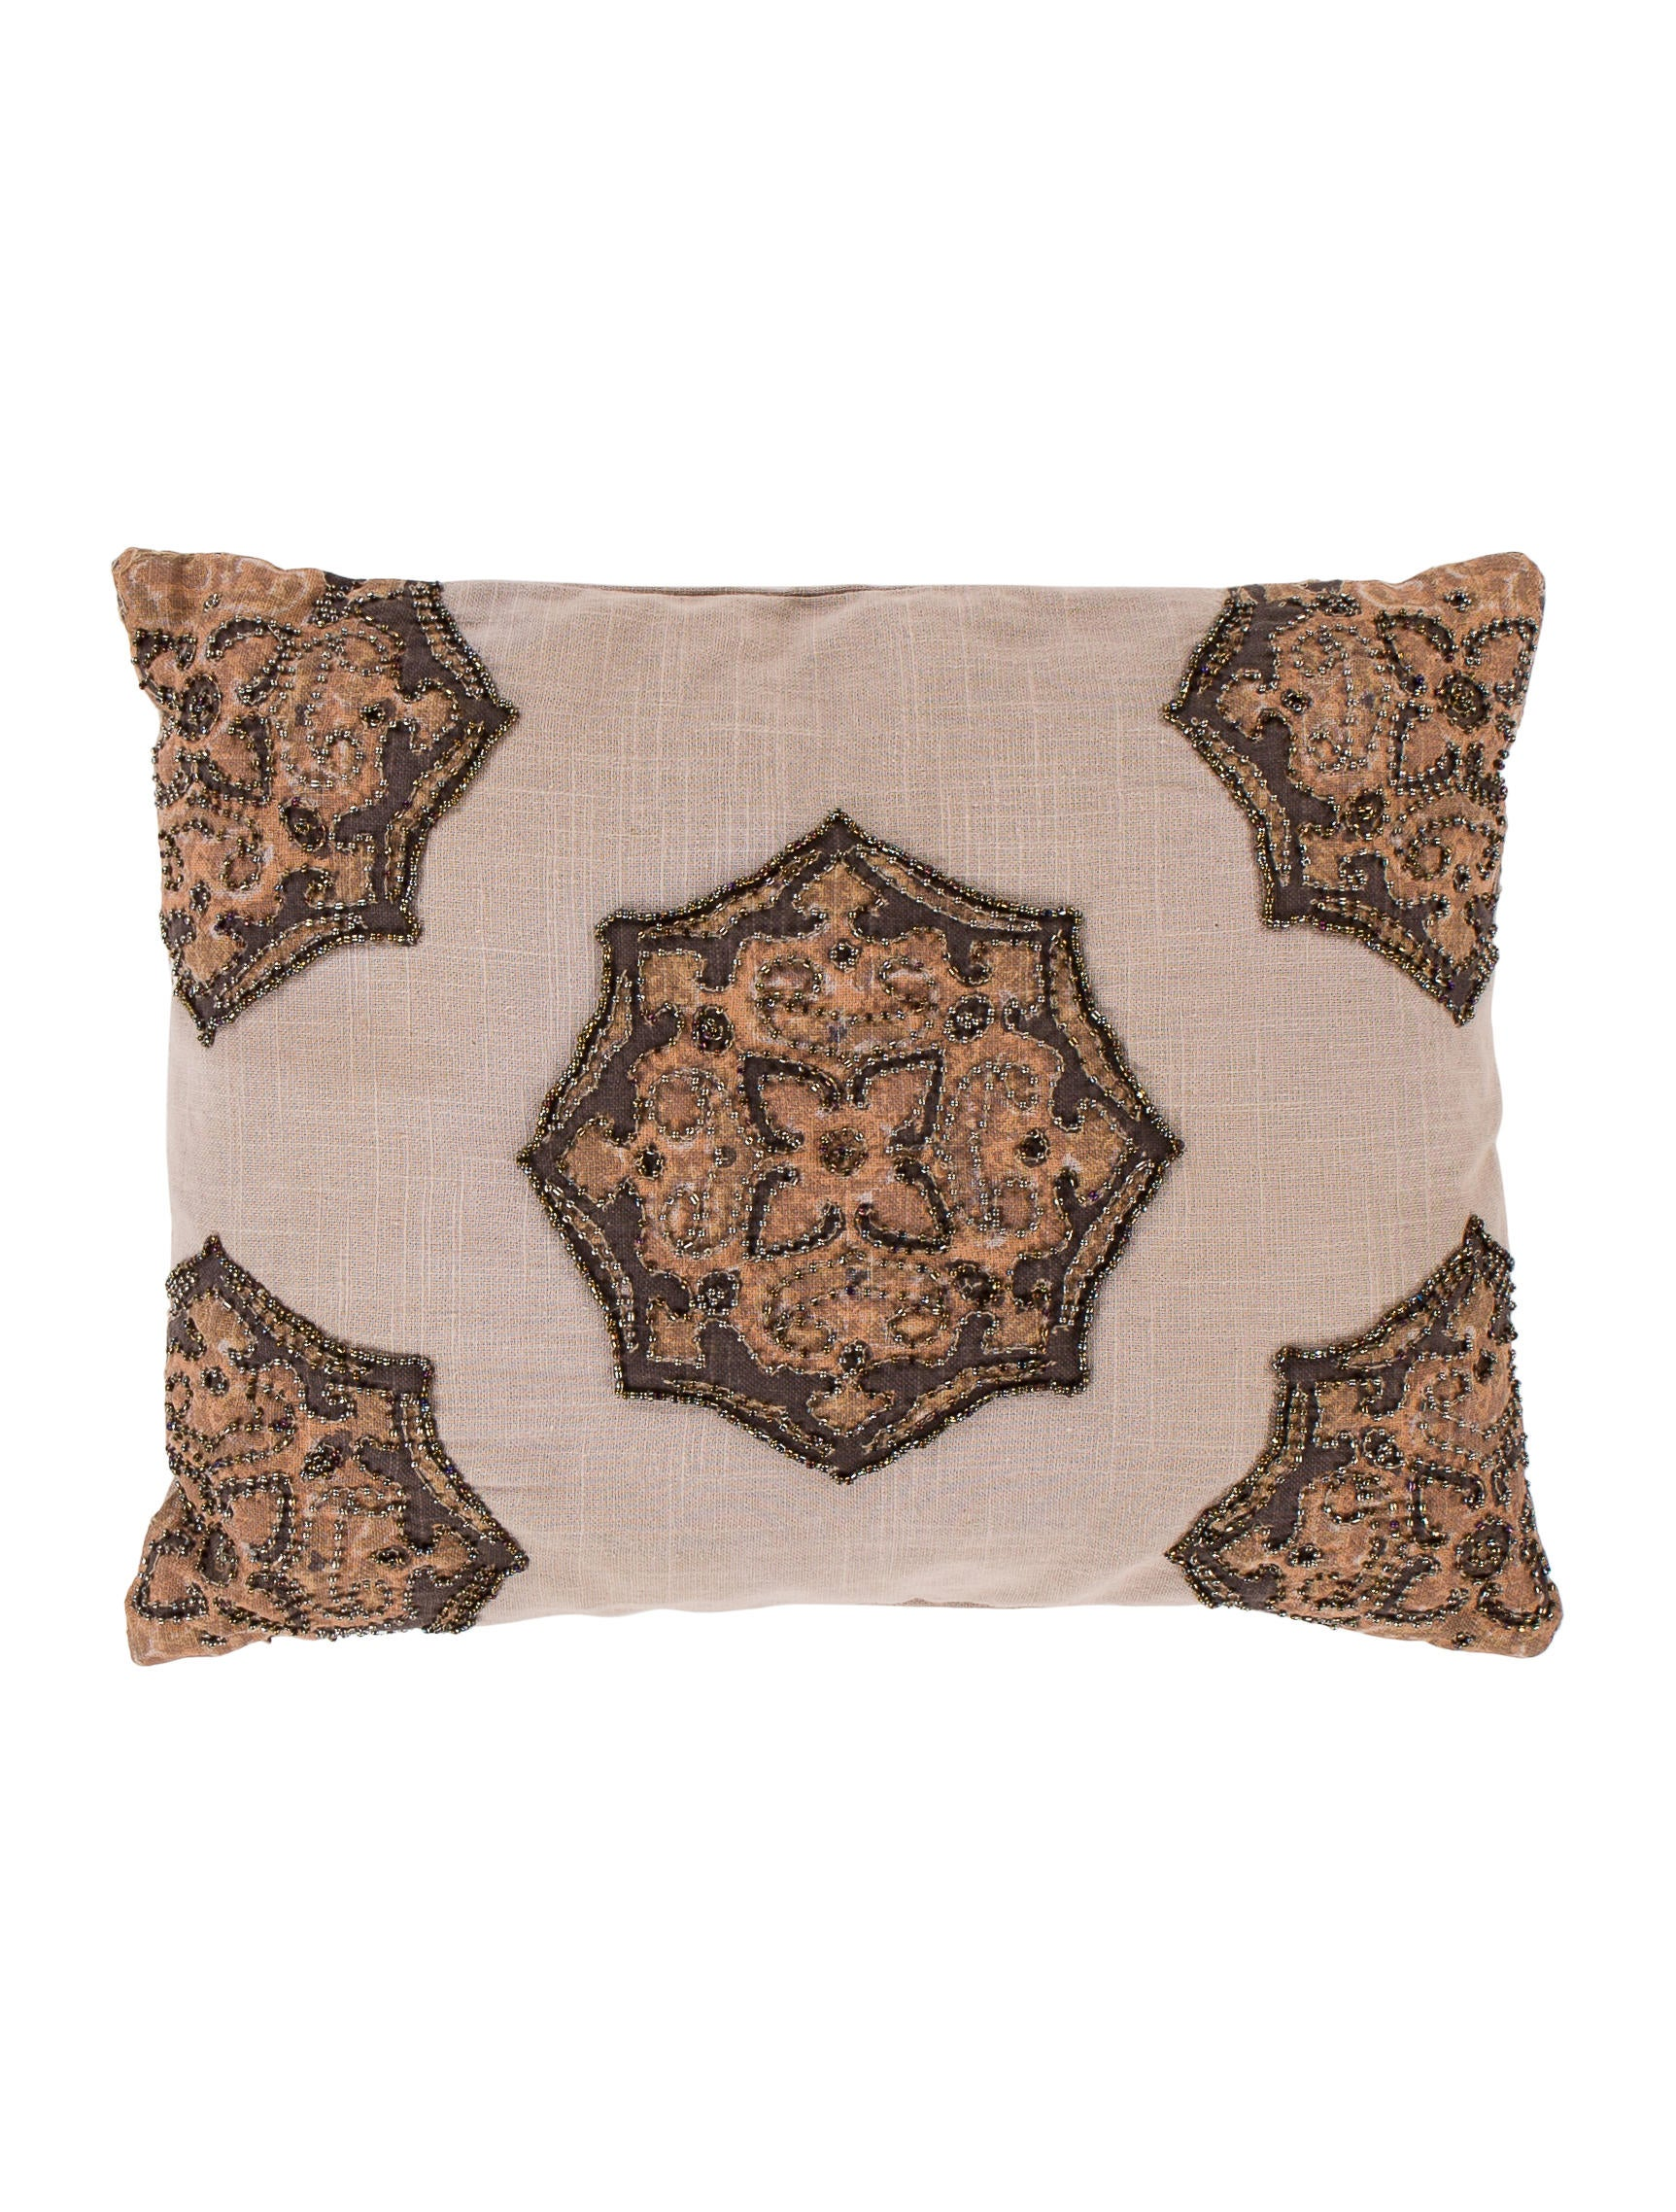 Kim Seybert Embellished Throw Pillow - Bedding And Bath - KSB20331 The RealReal